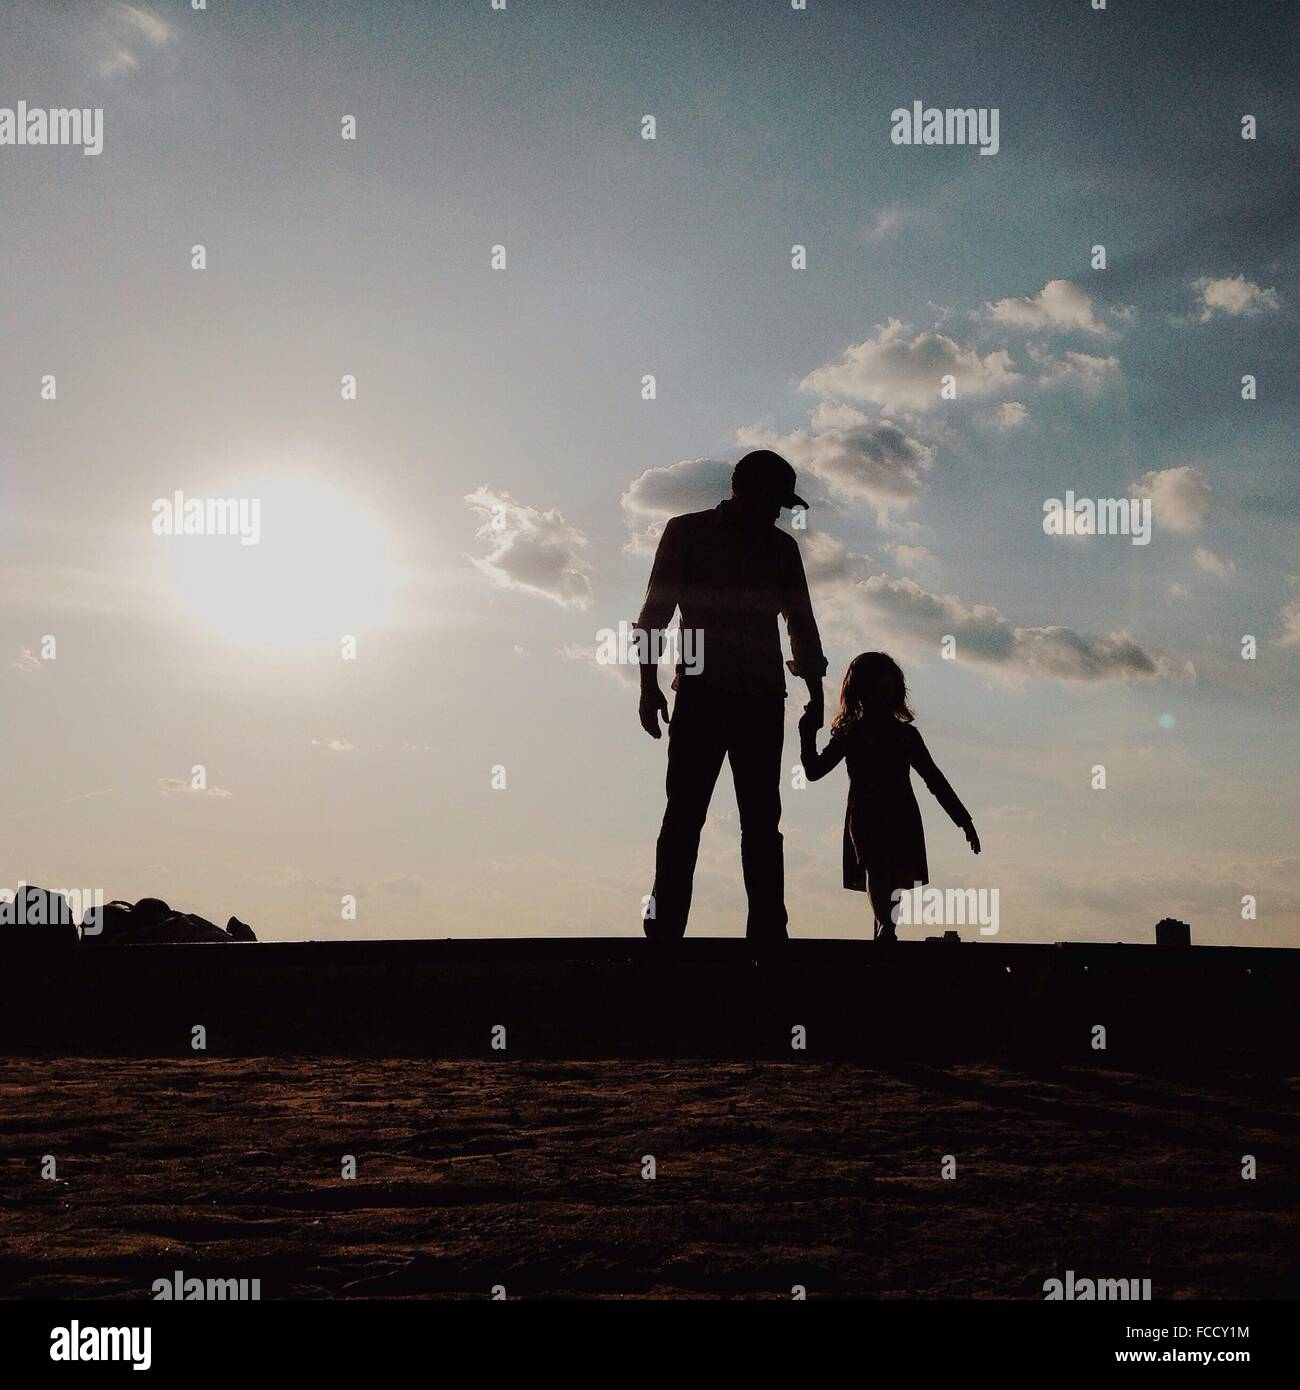 Silhouette Father With Daughter Standing On Field Against Sky - Stock Image